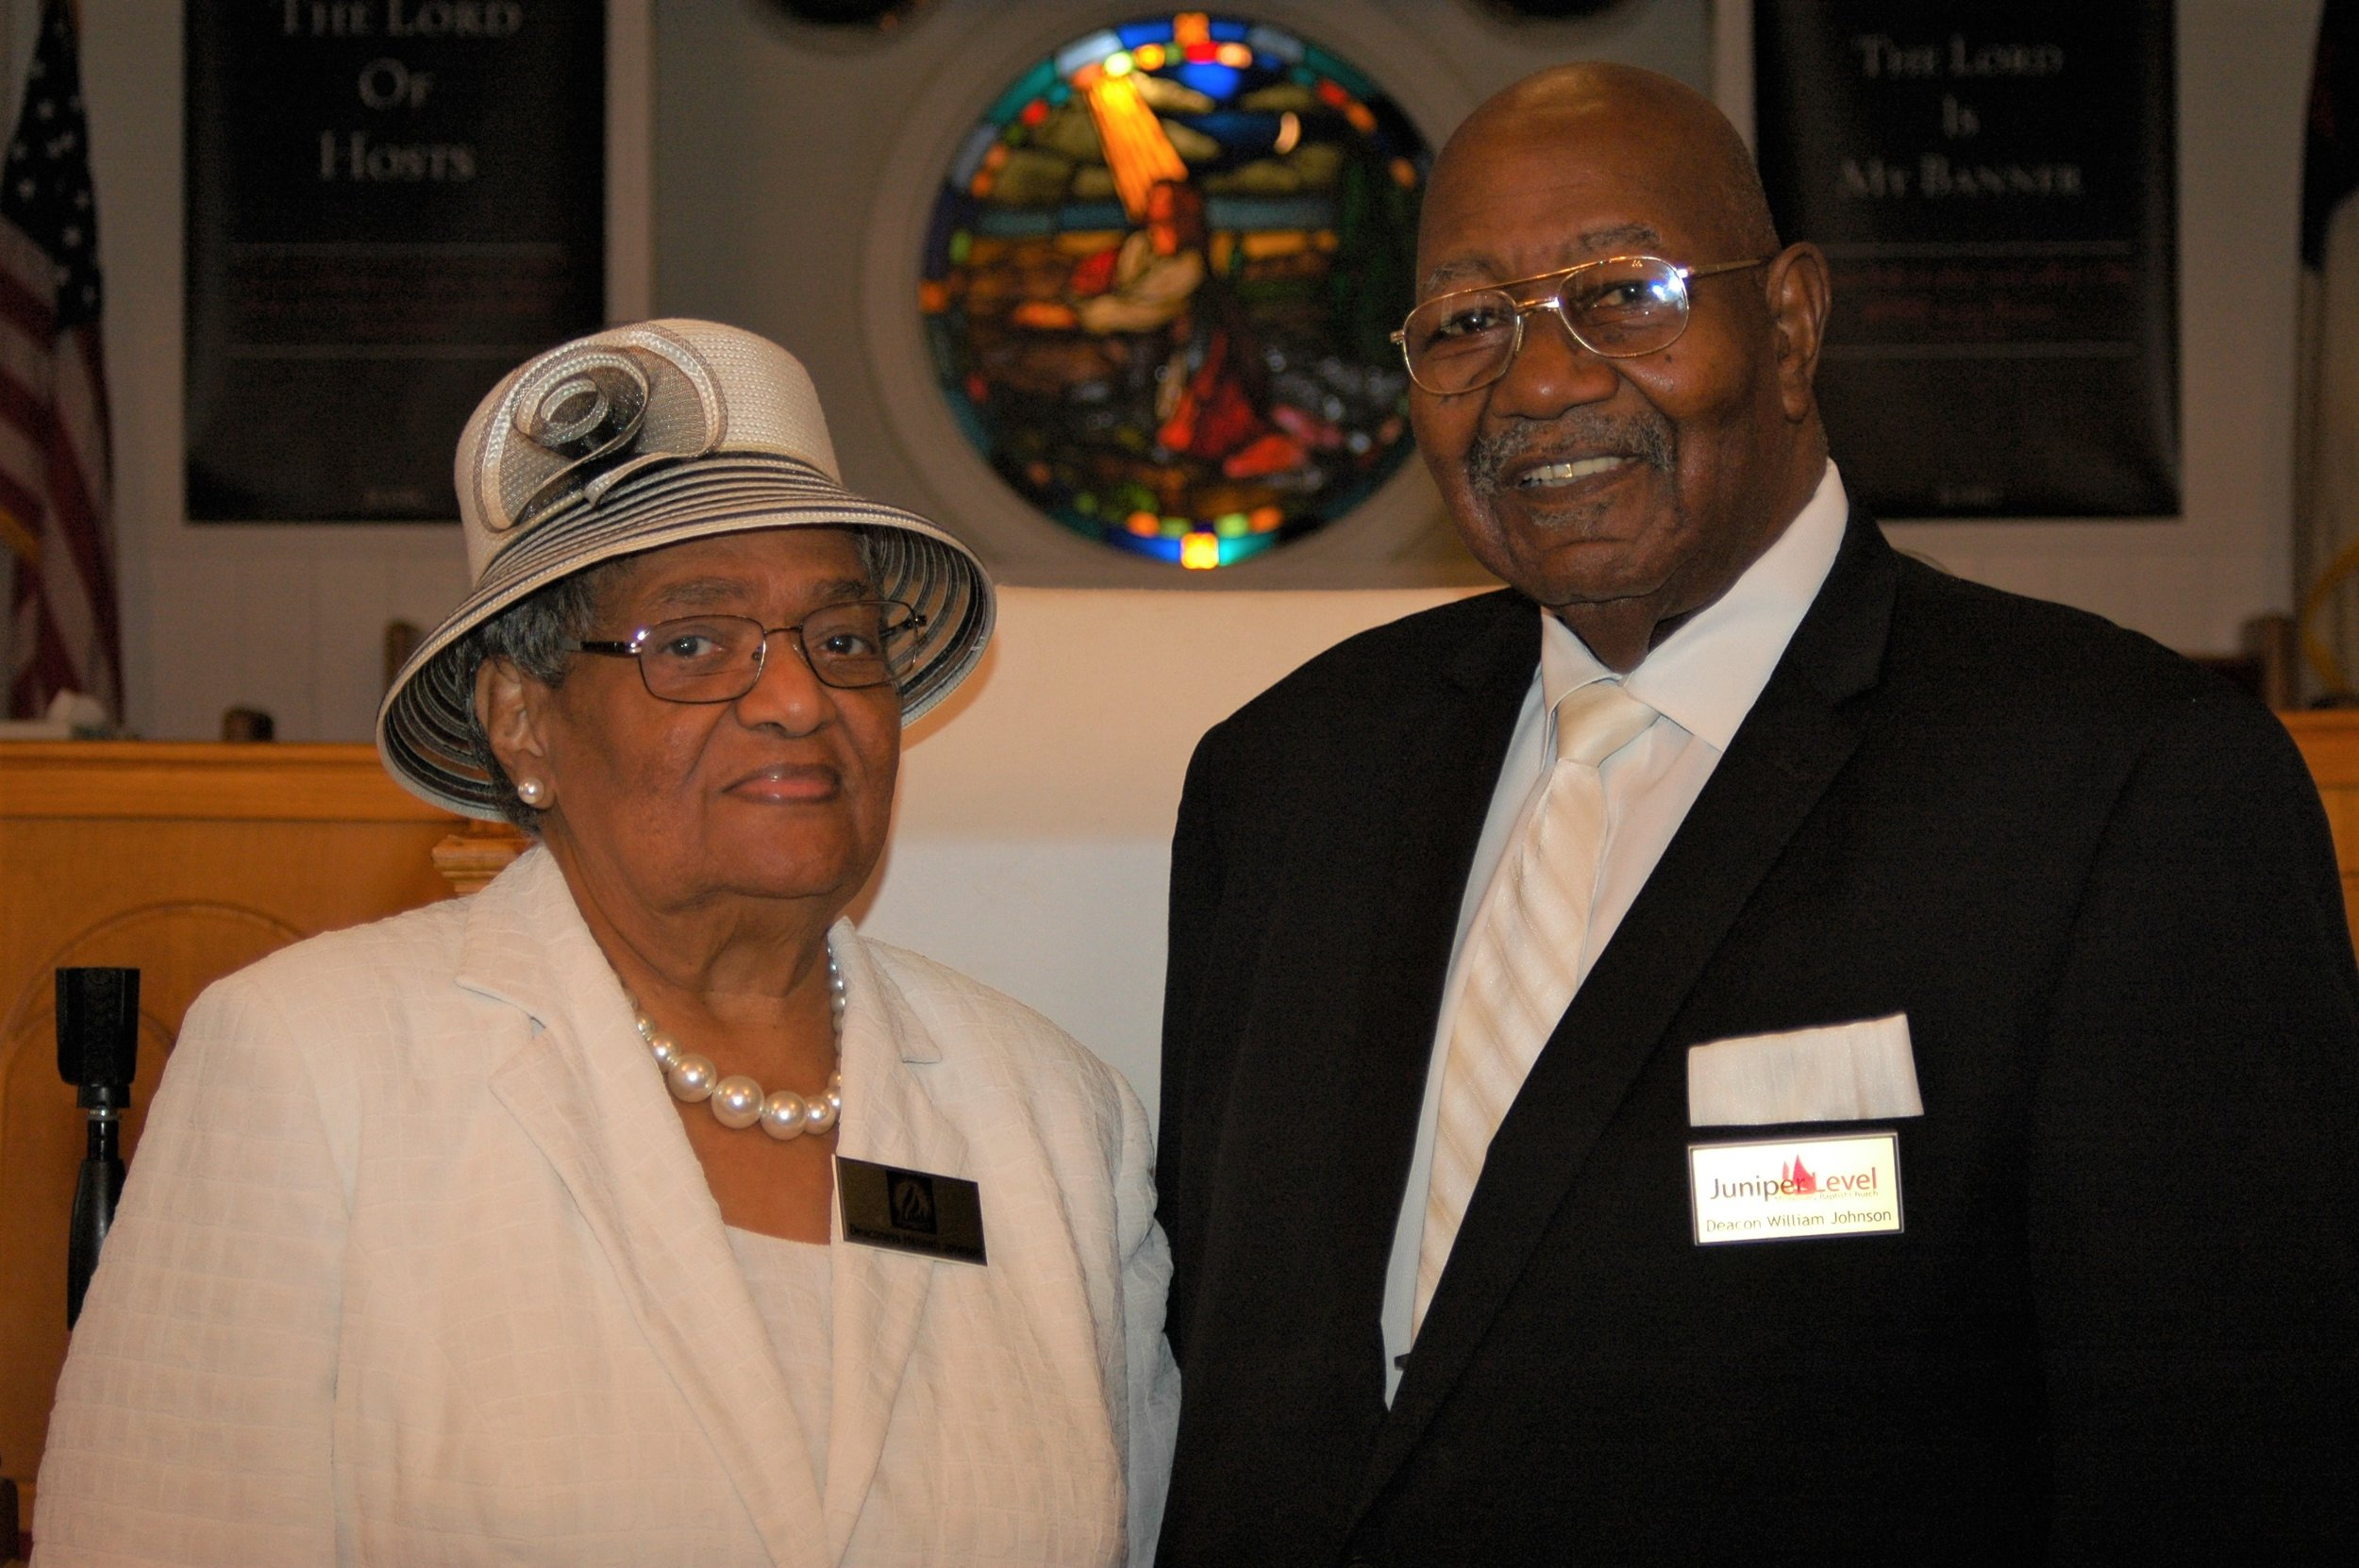 Deacon and Deaconess William and Hannah Johnson